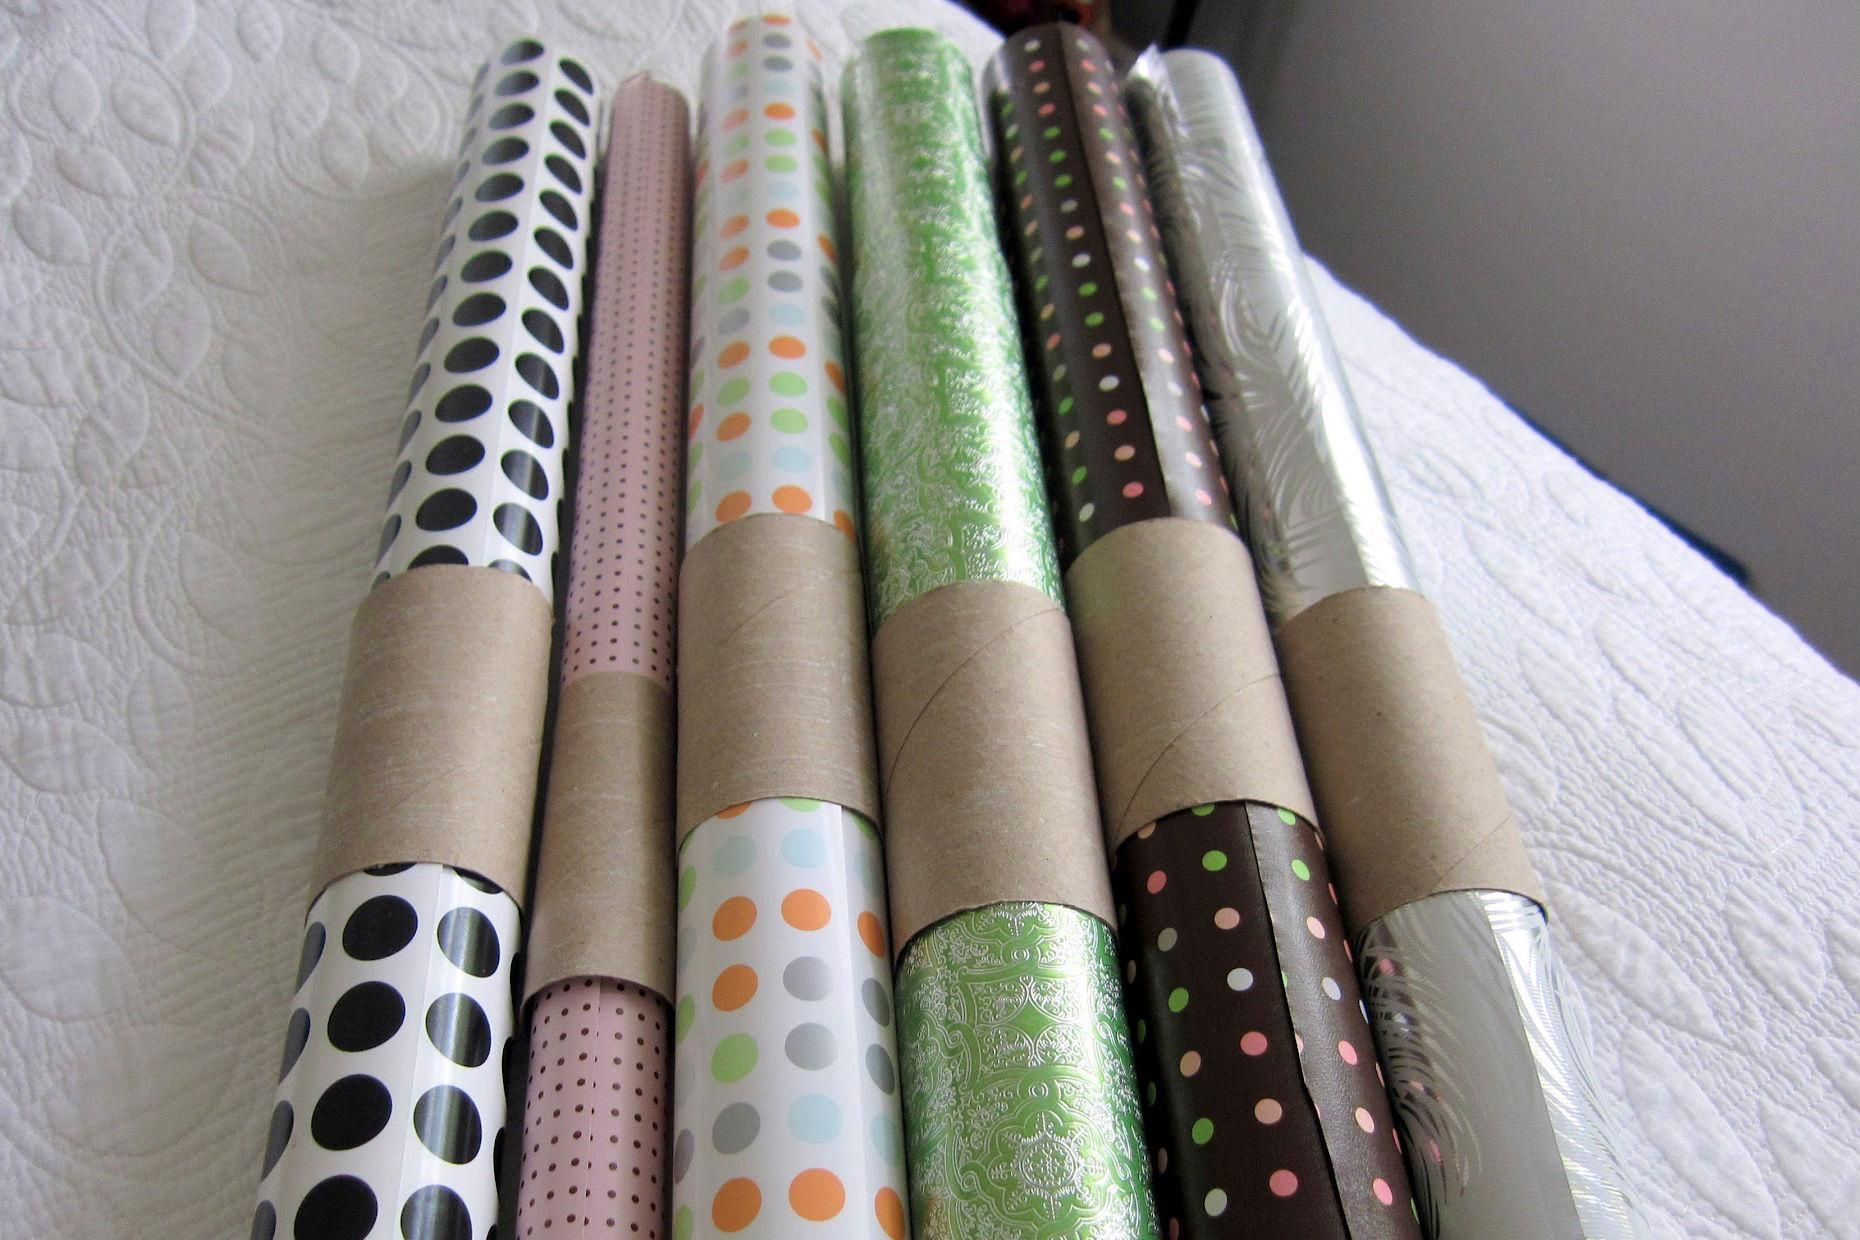 Wrapping paper in toilet paper rolls